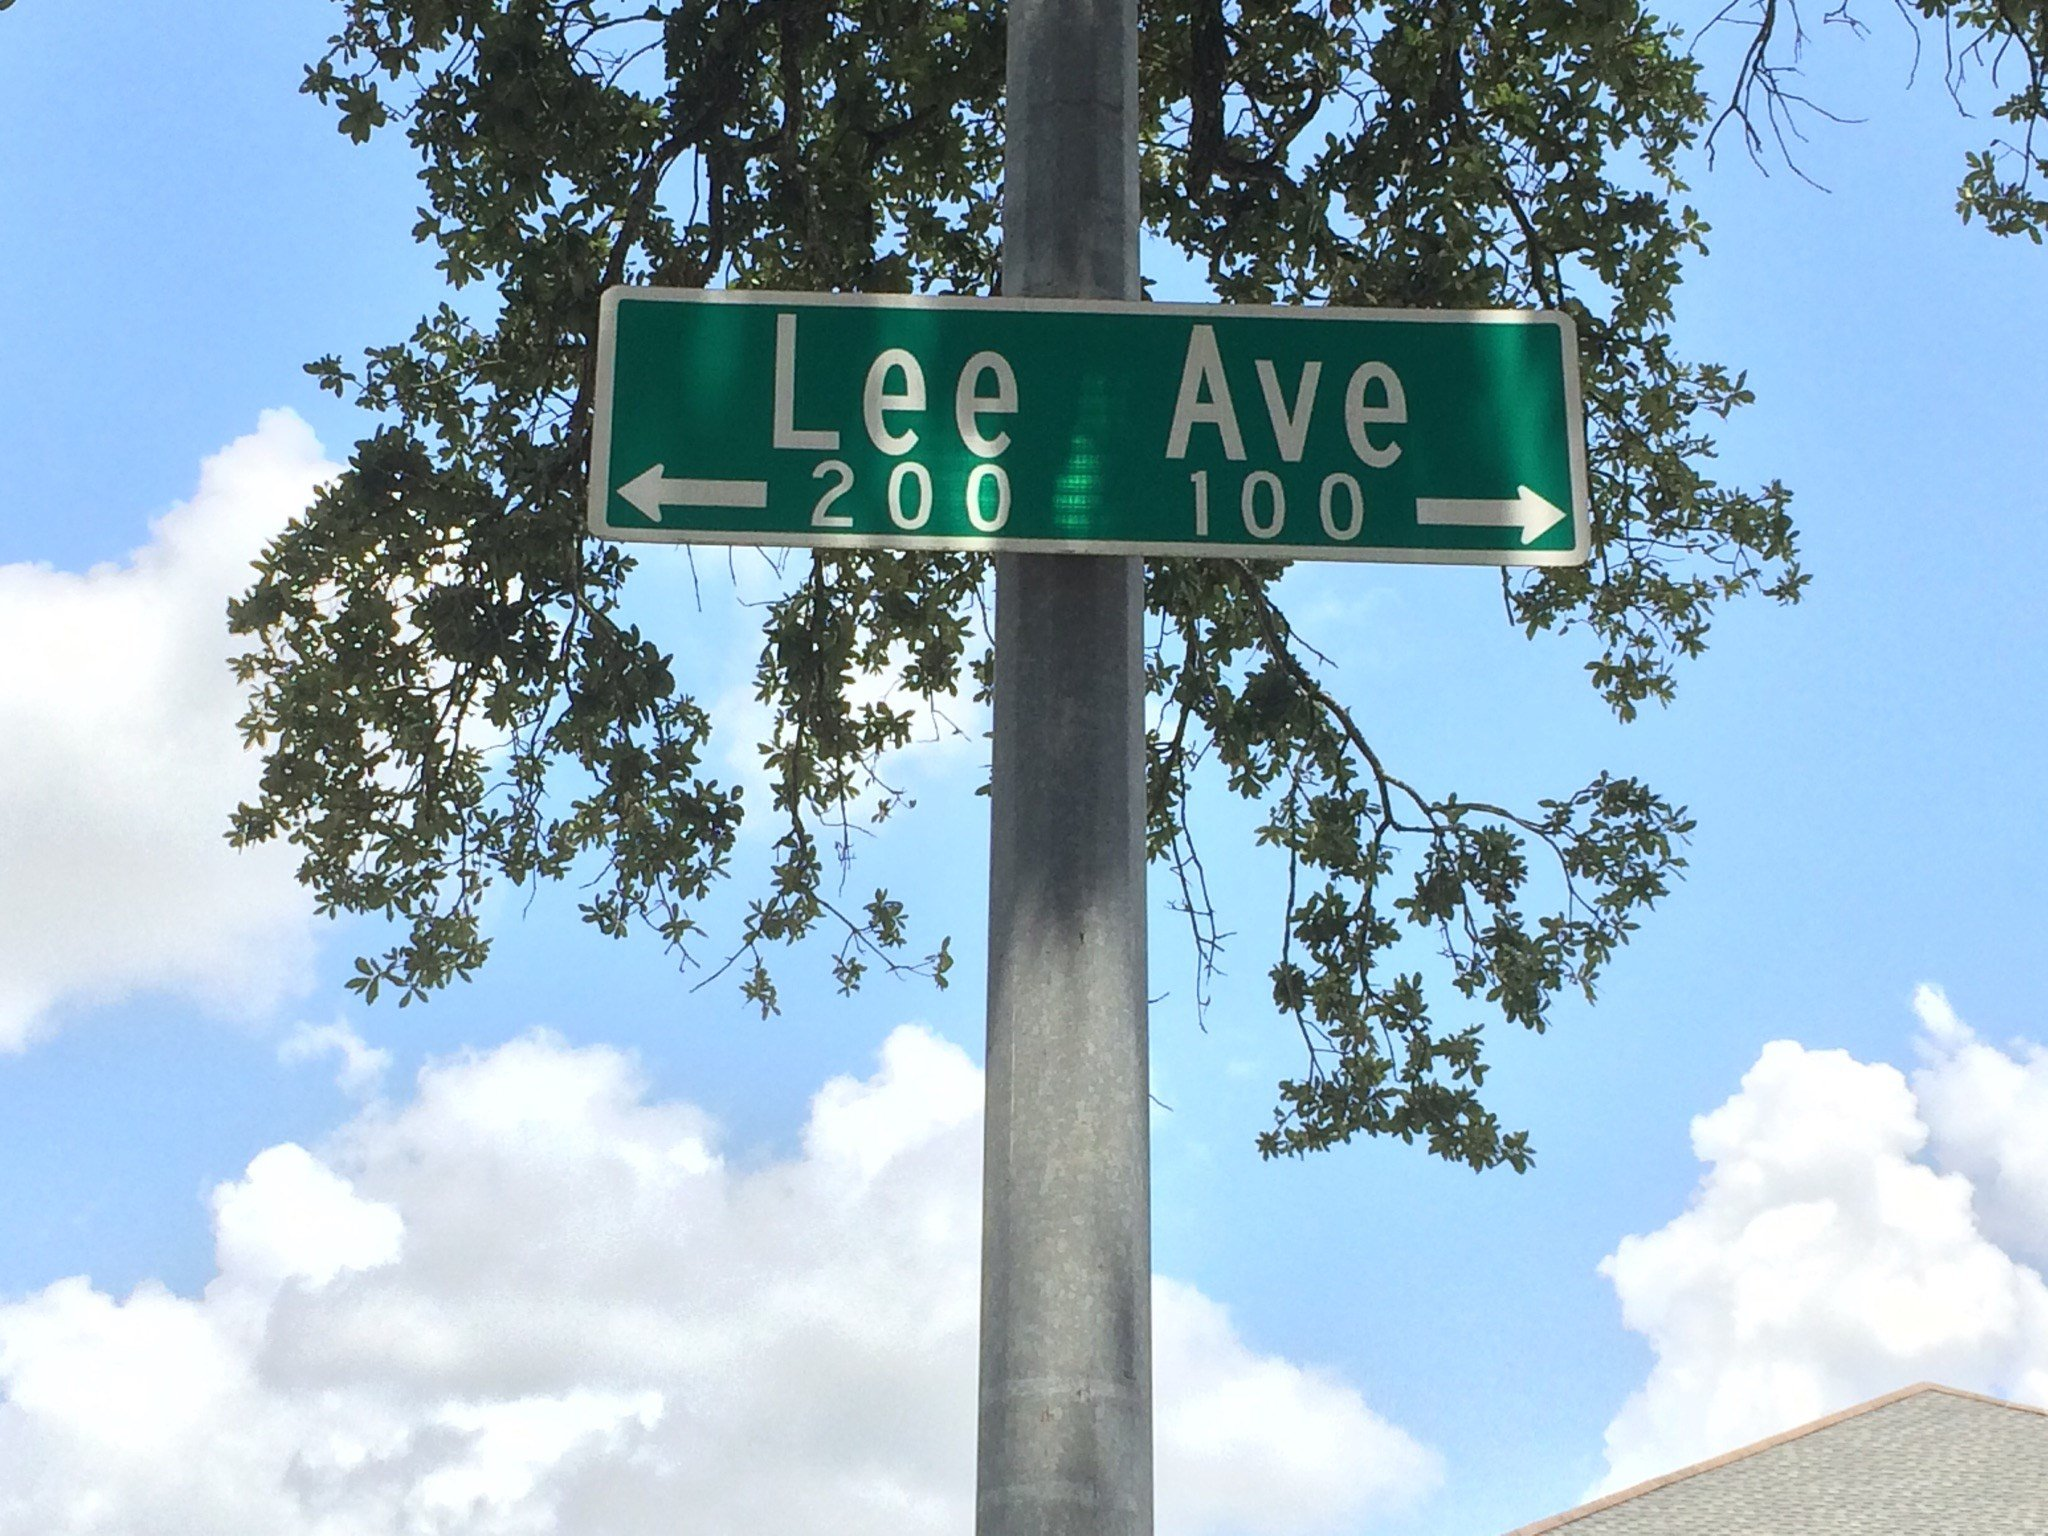 A male victim was fatally shot in the 100 block of Lee Ave.